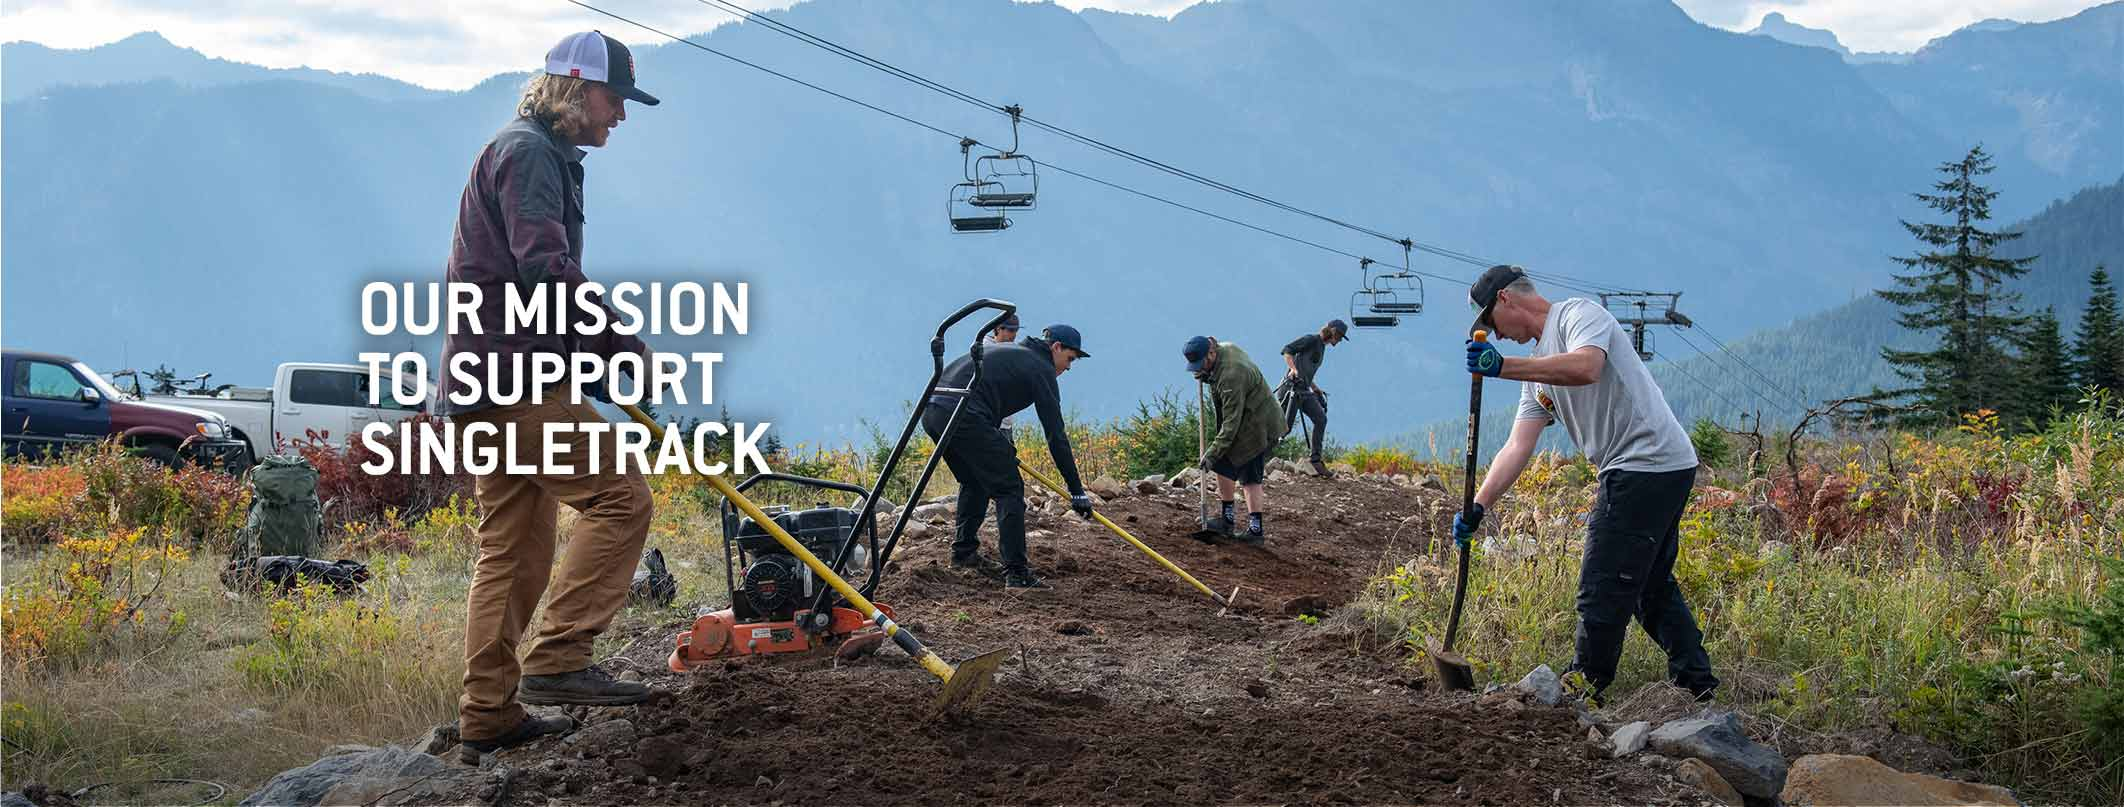 Our Mission to Support Singletrack